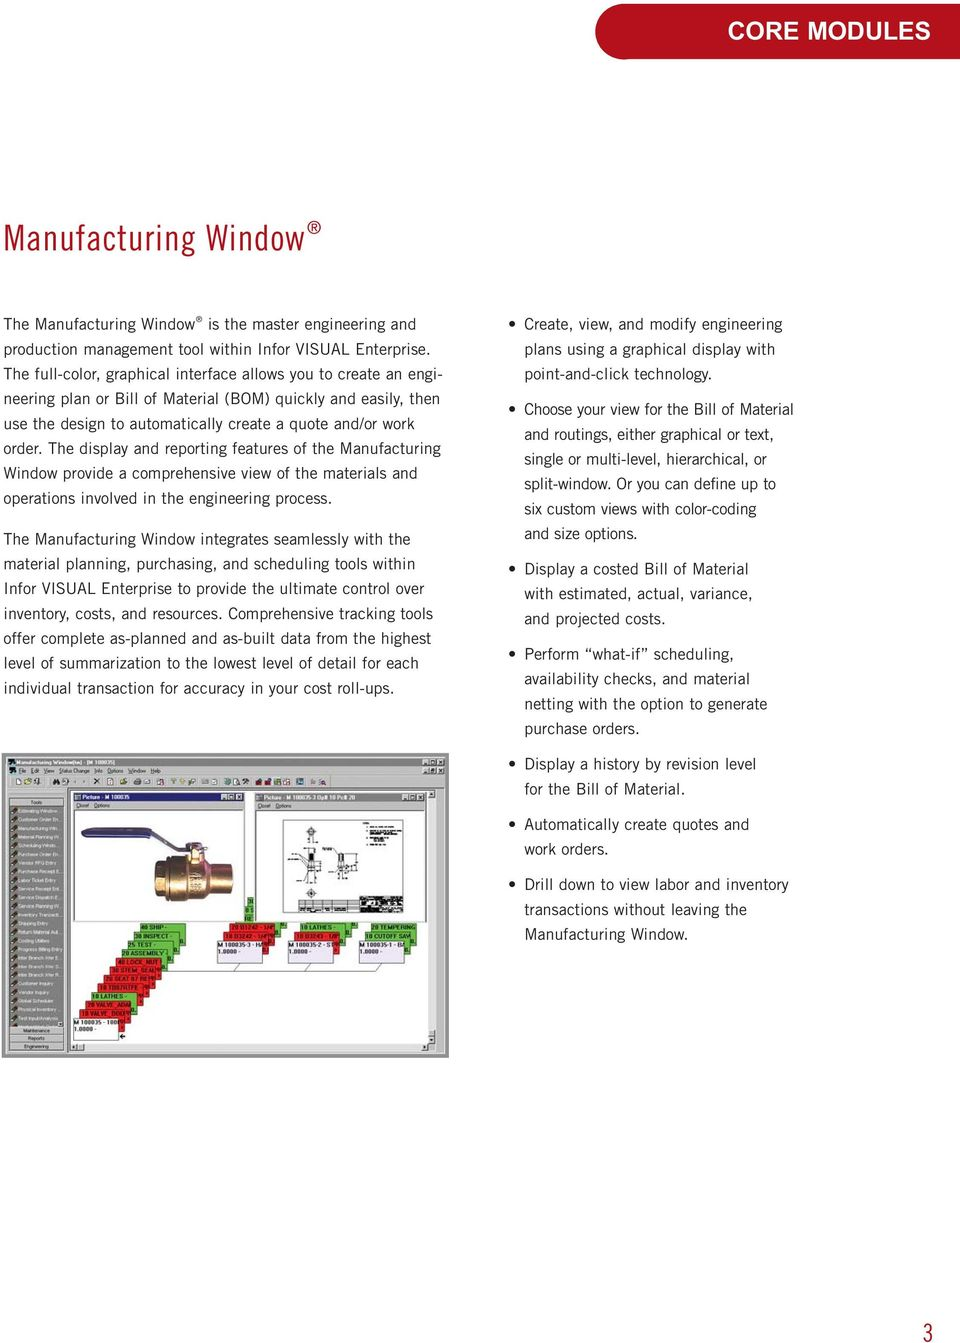 The display and reporting features of the Manufacturing Window provide a comprehensive view of the materials and operations involved in the engineering process.